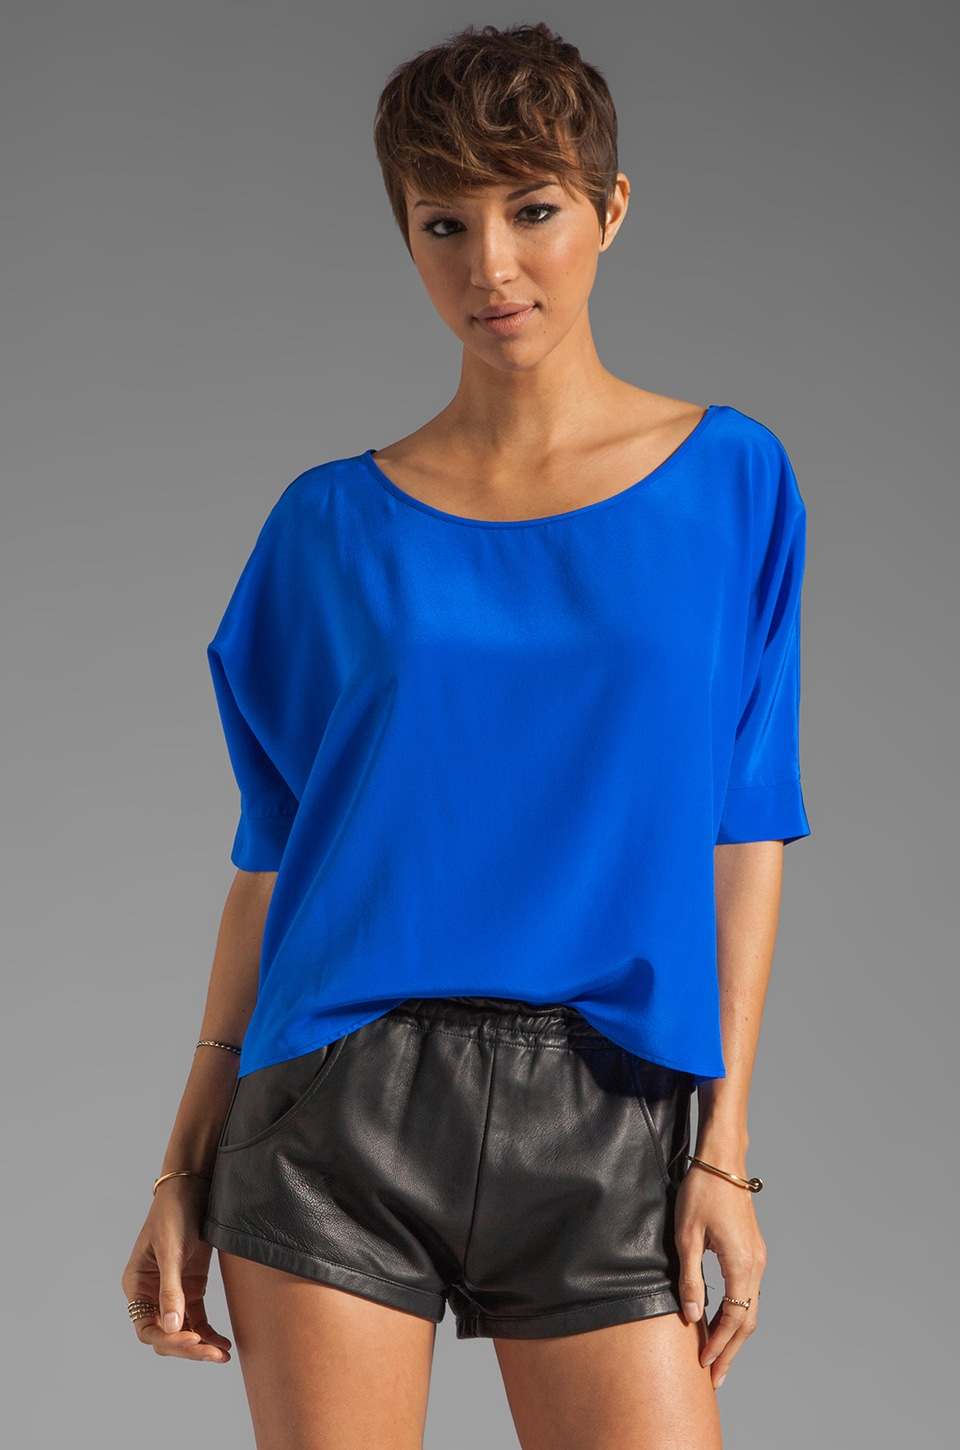 Karina Grimaldi St. Lucia Solid Zipper Top in Royal